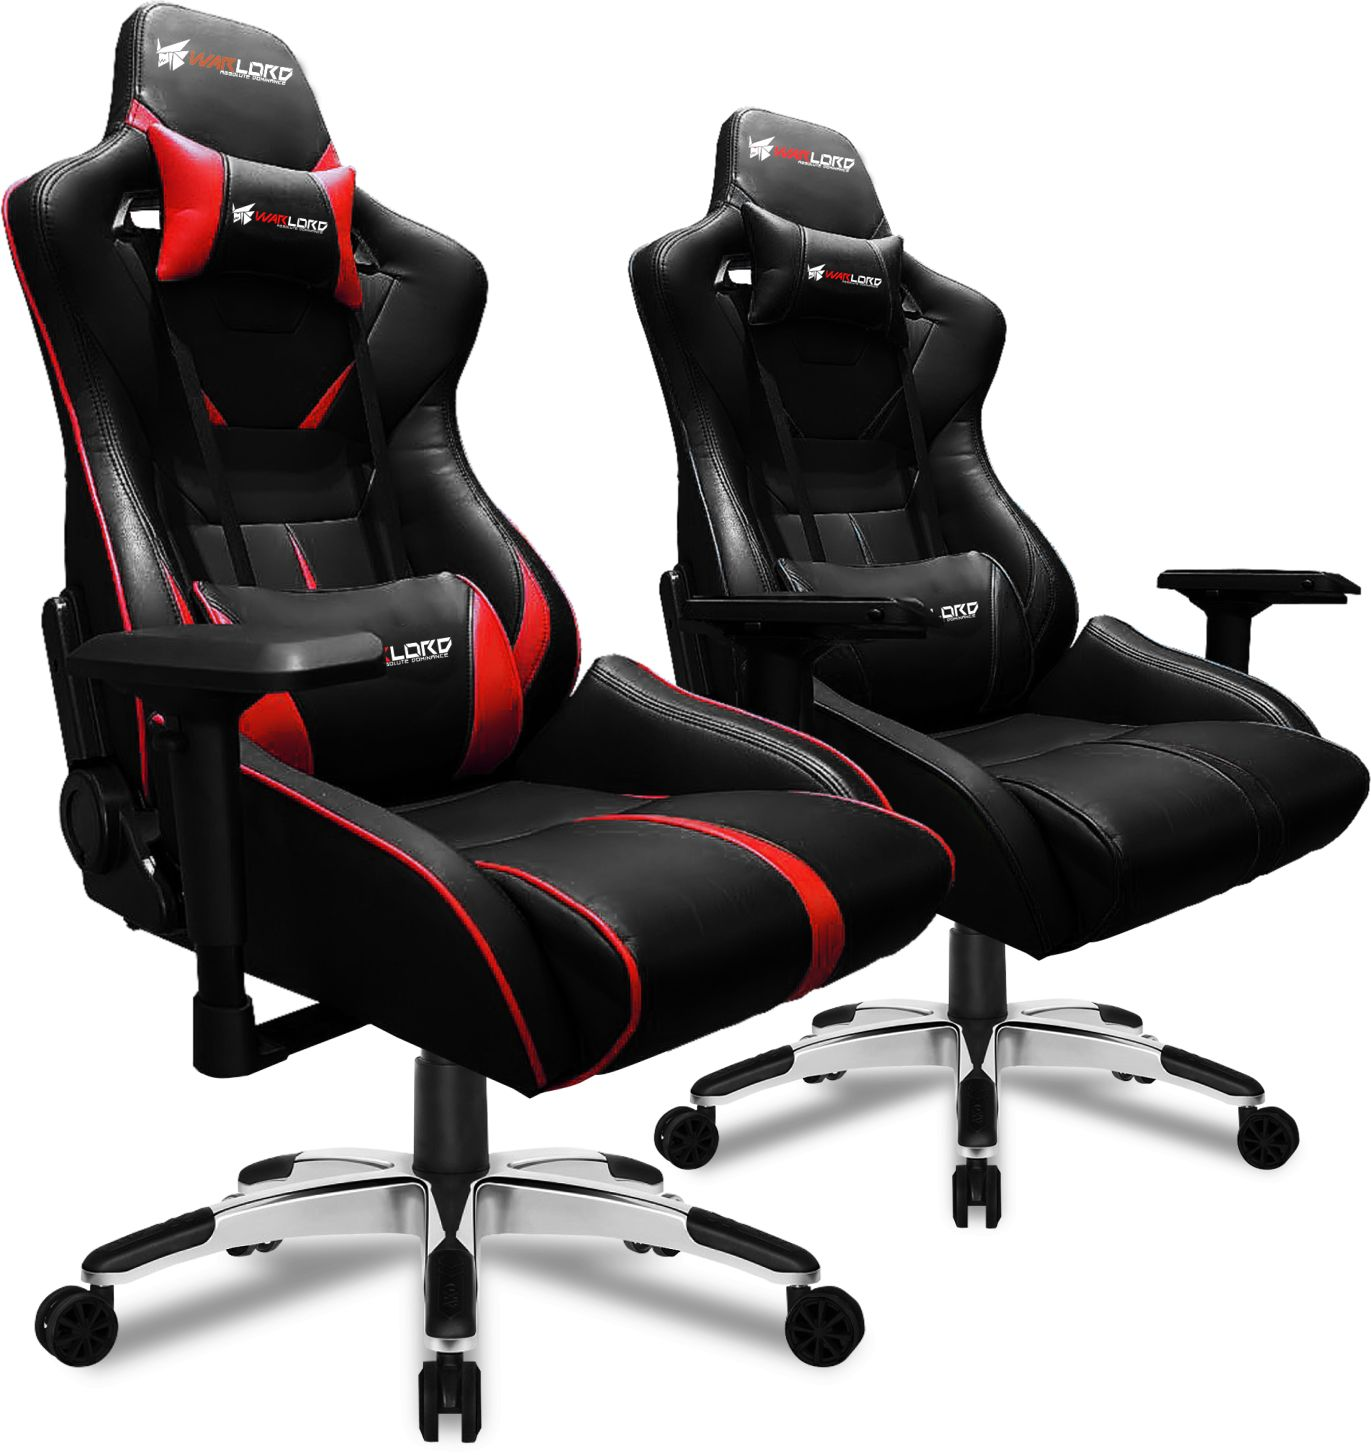 on racing htm high canada office leather gamer gaming back chair p executive sale chairs